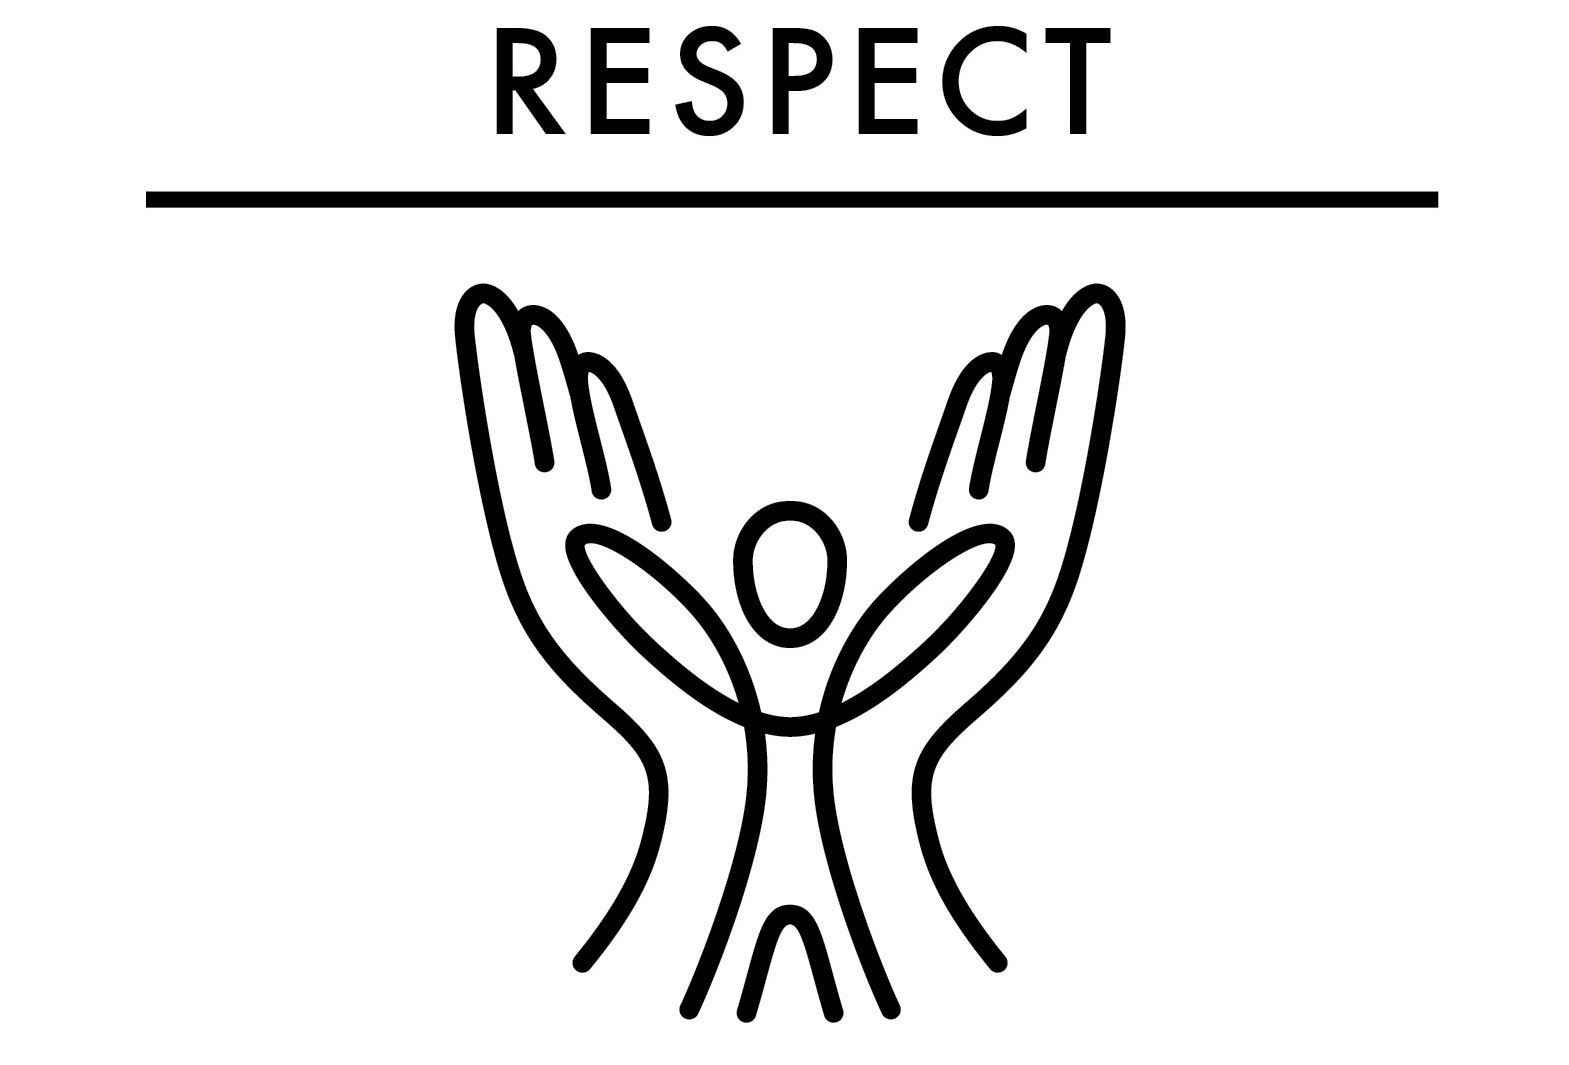 Respect-reedited